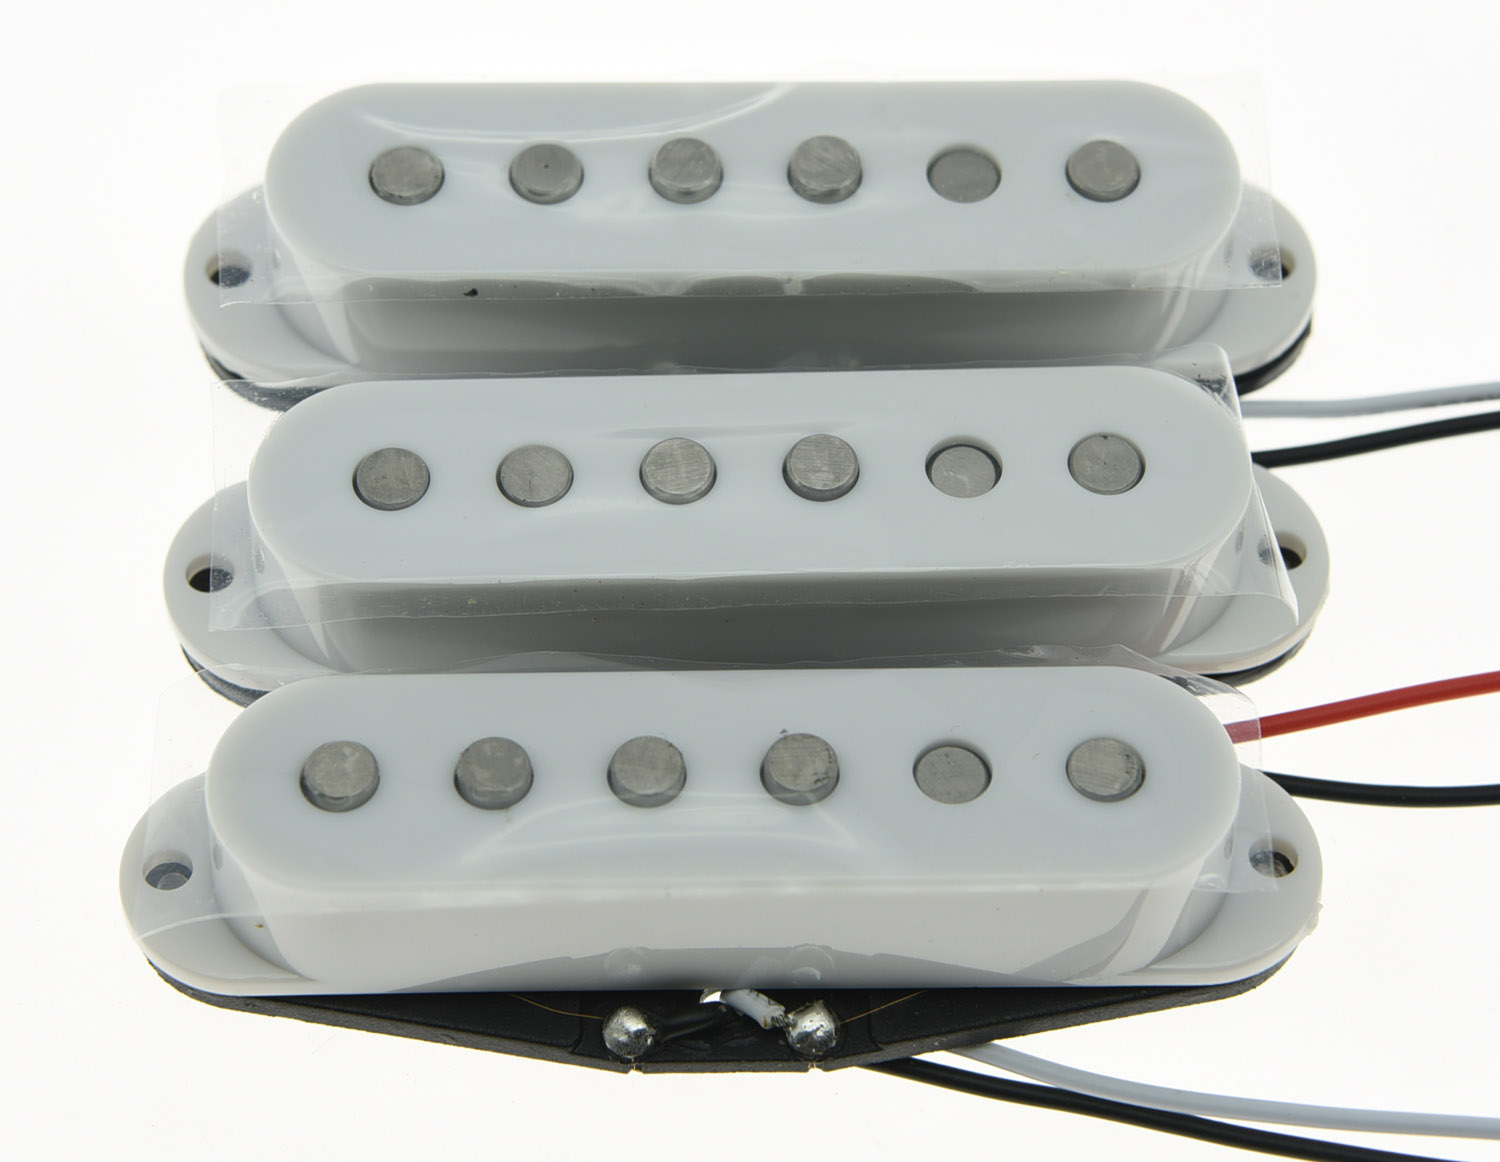 3x White  Alnico 5 Single Coil Pickups ST Strat SSS Pickup Set vintage voice single coil pickups fits for stratocaster ceramic bobbin alnico single coil guitar pickup staggered pole top